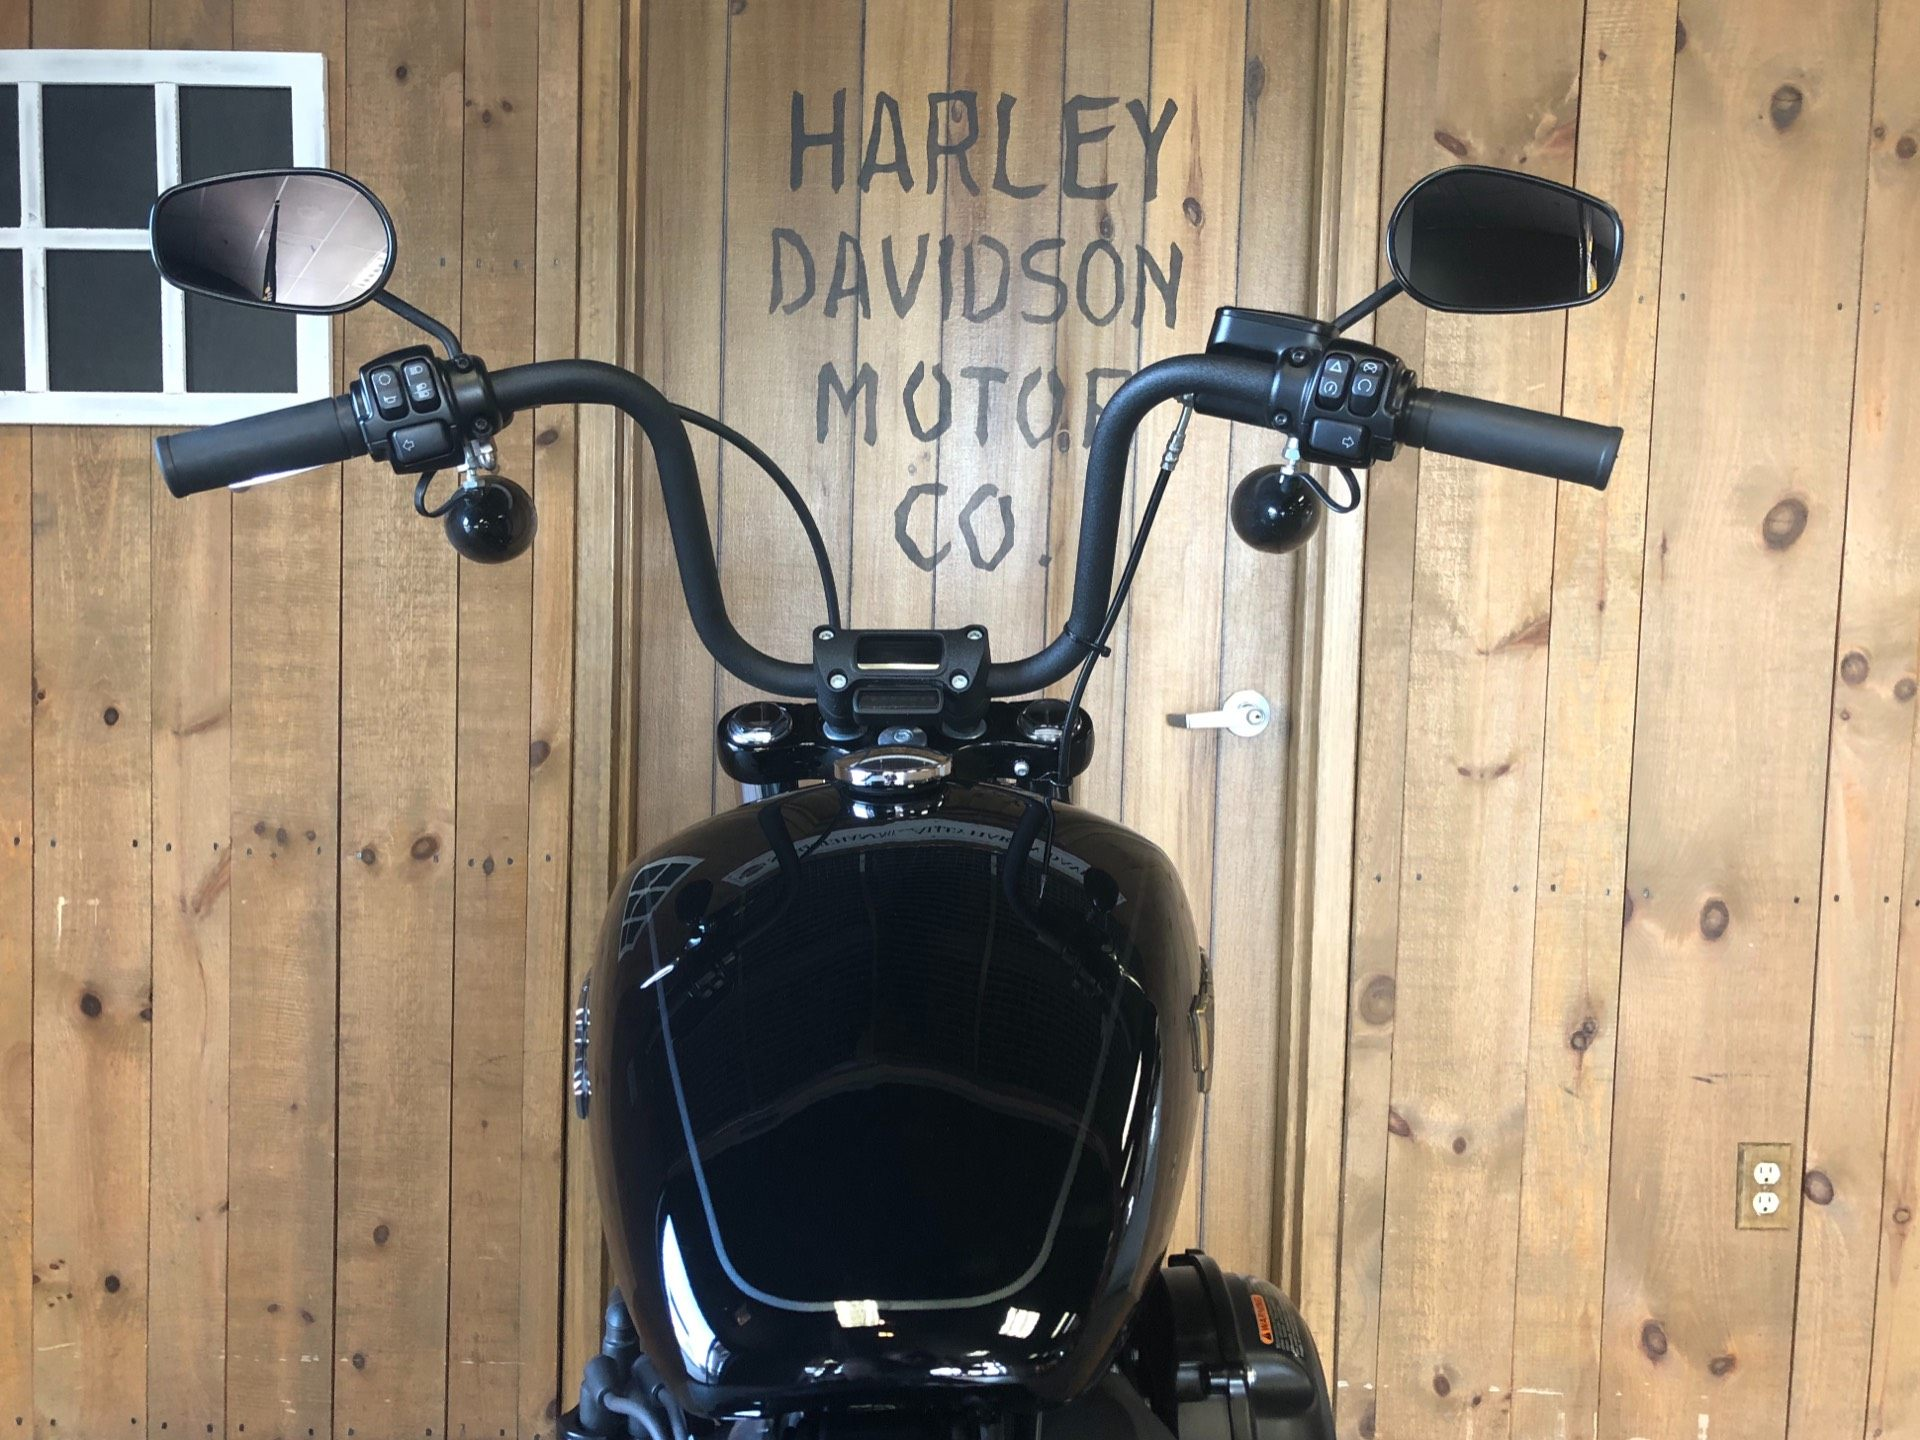 2019 Harley-Davidson Street Bob in Harrisburg, Pennsylvania - Photo 7